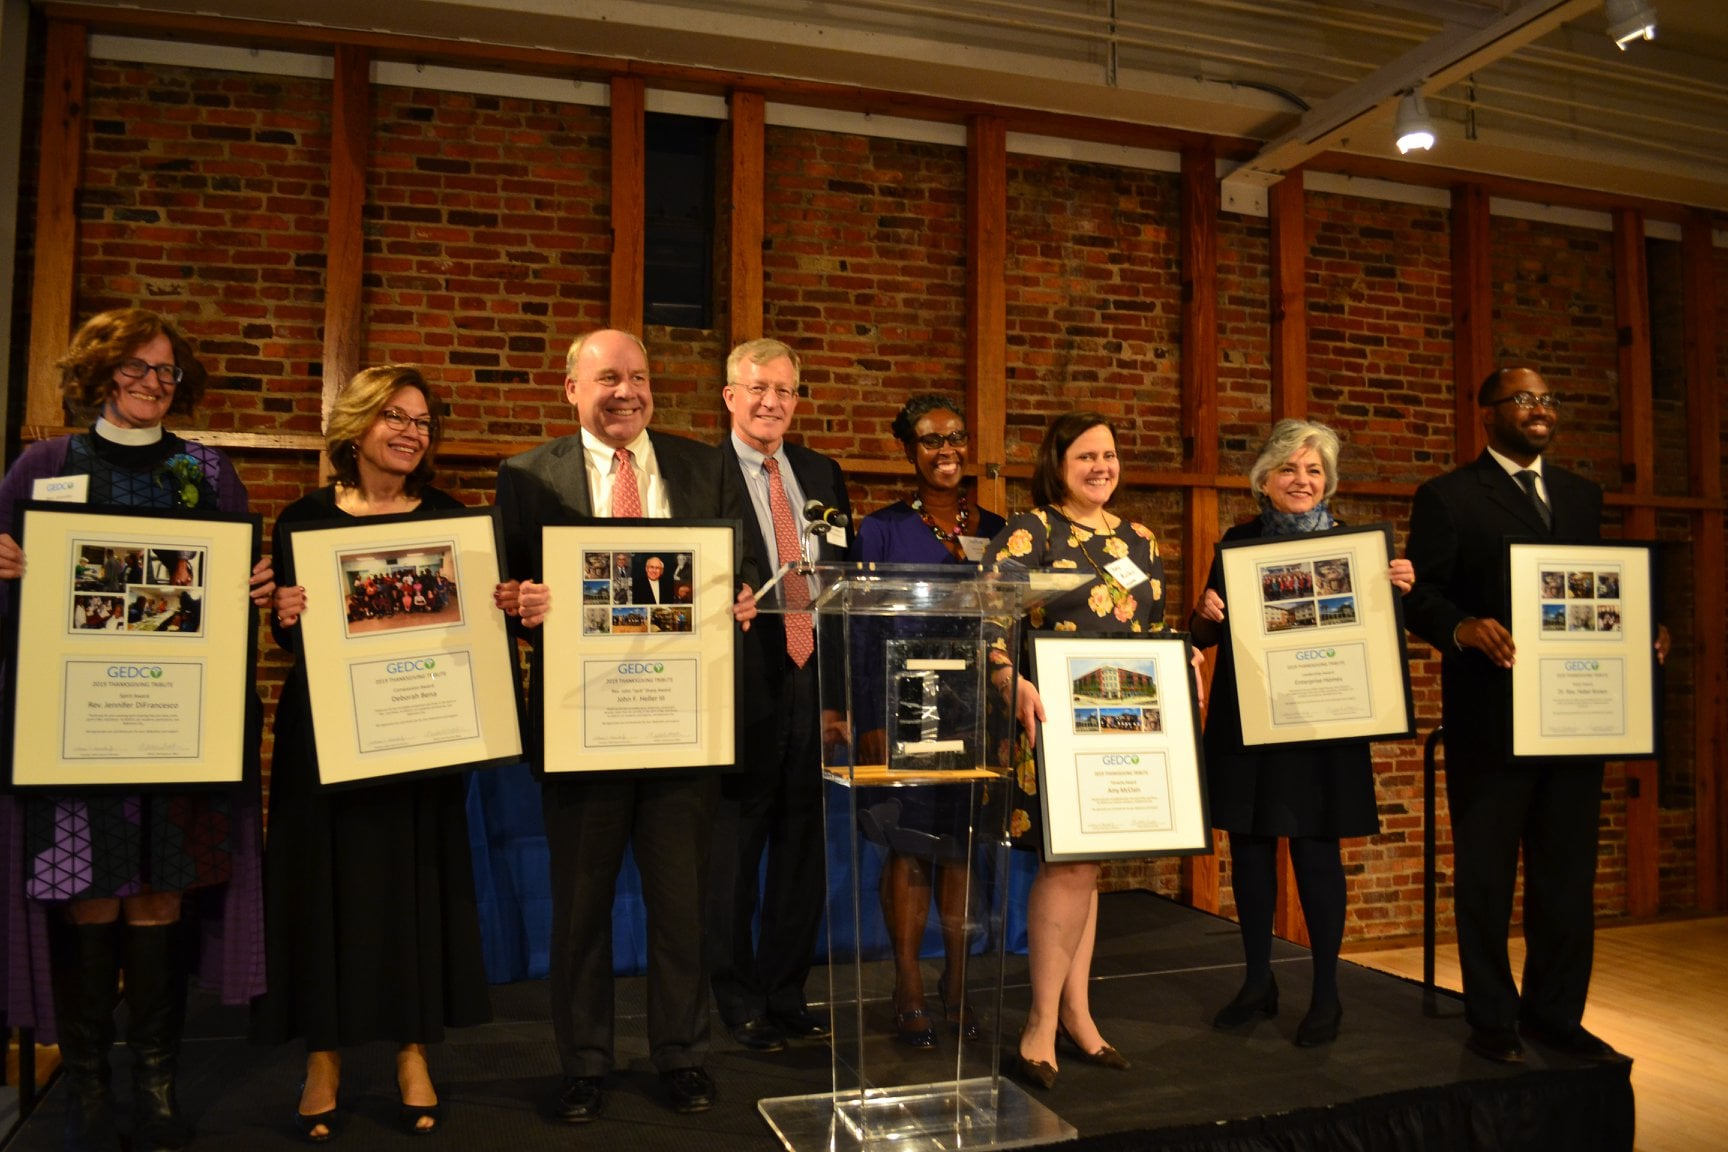 GEDCO Non-Profit Honors John Heller for Volunteerism in Baltimore, MD